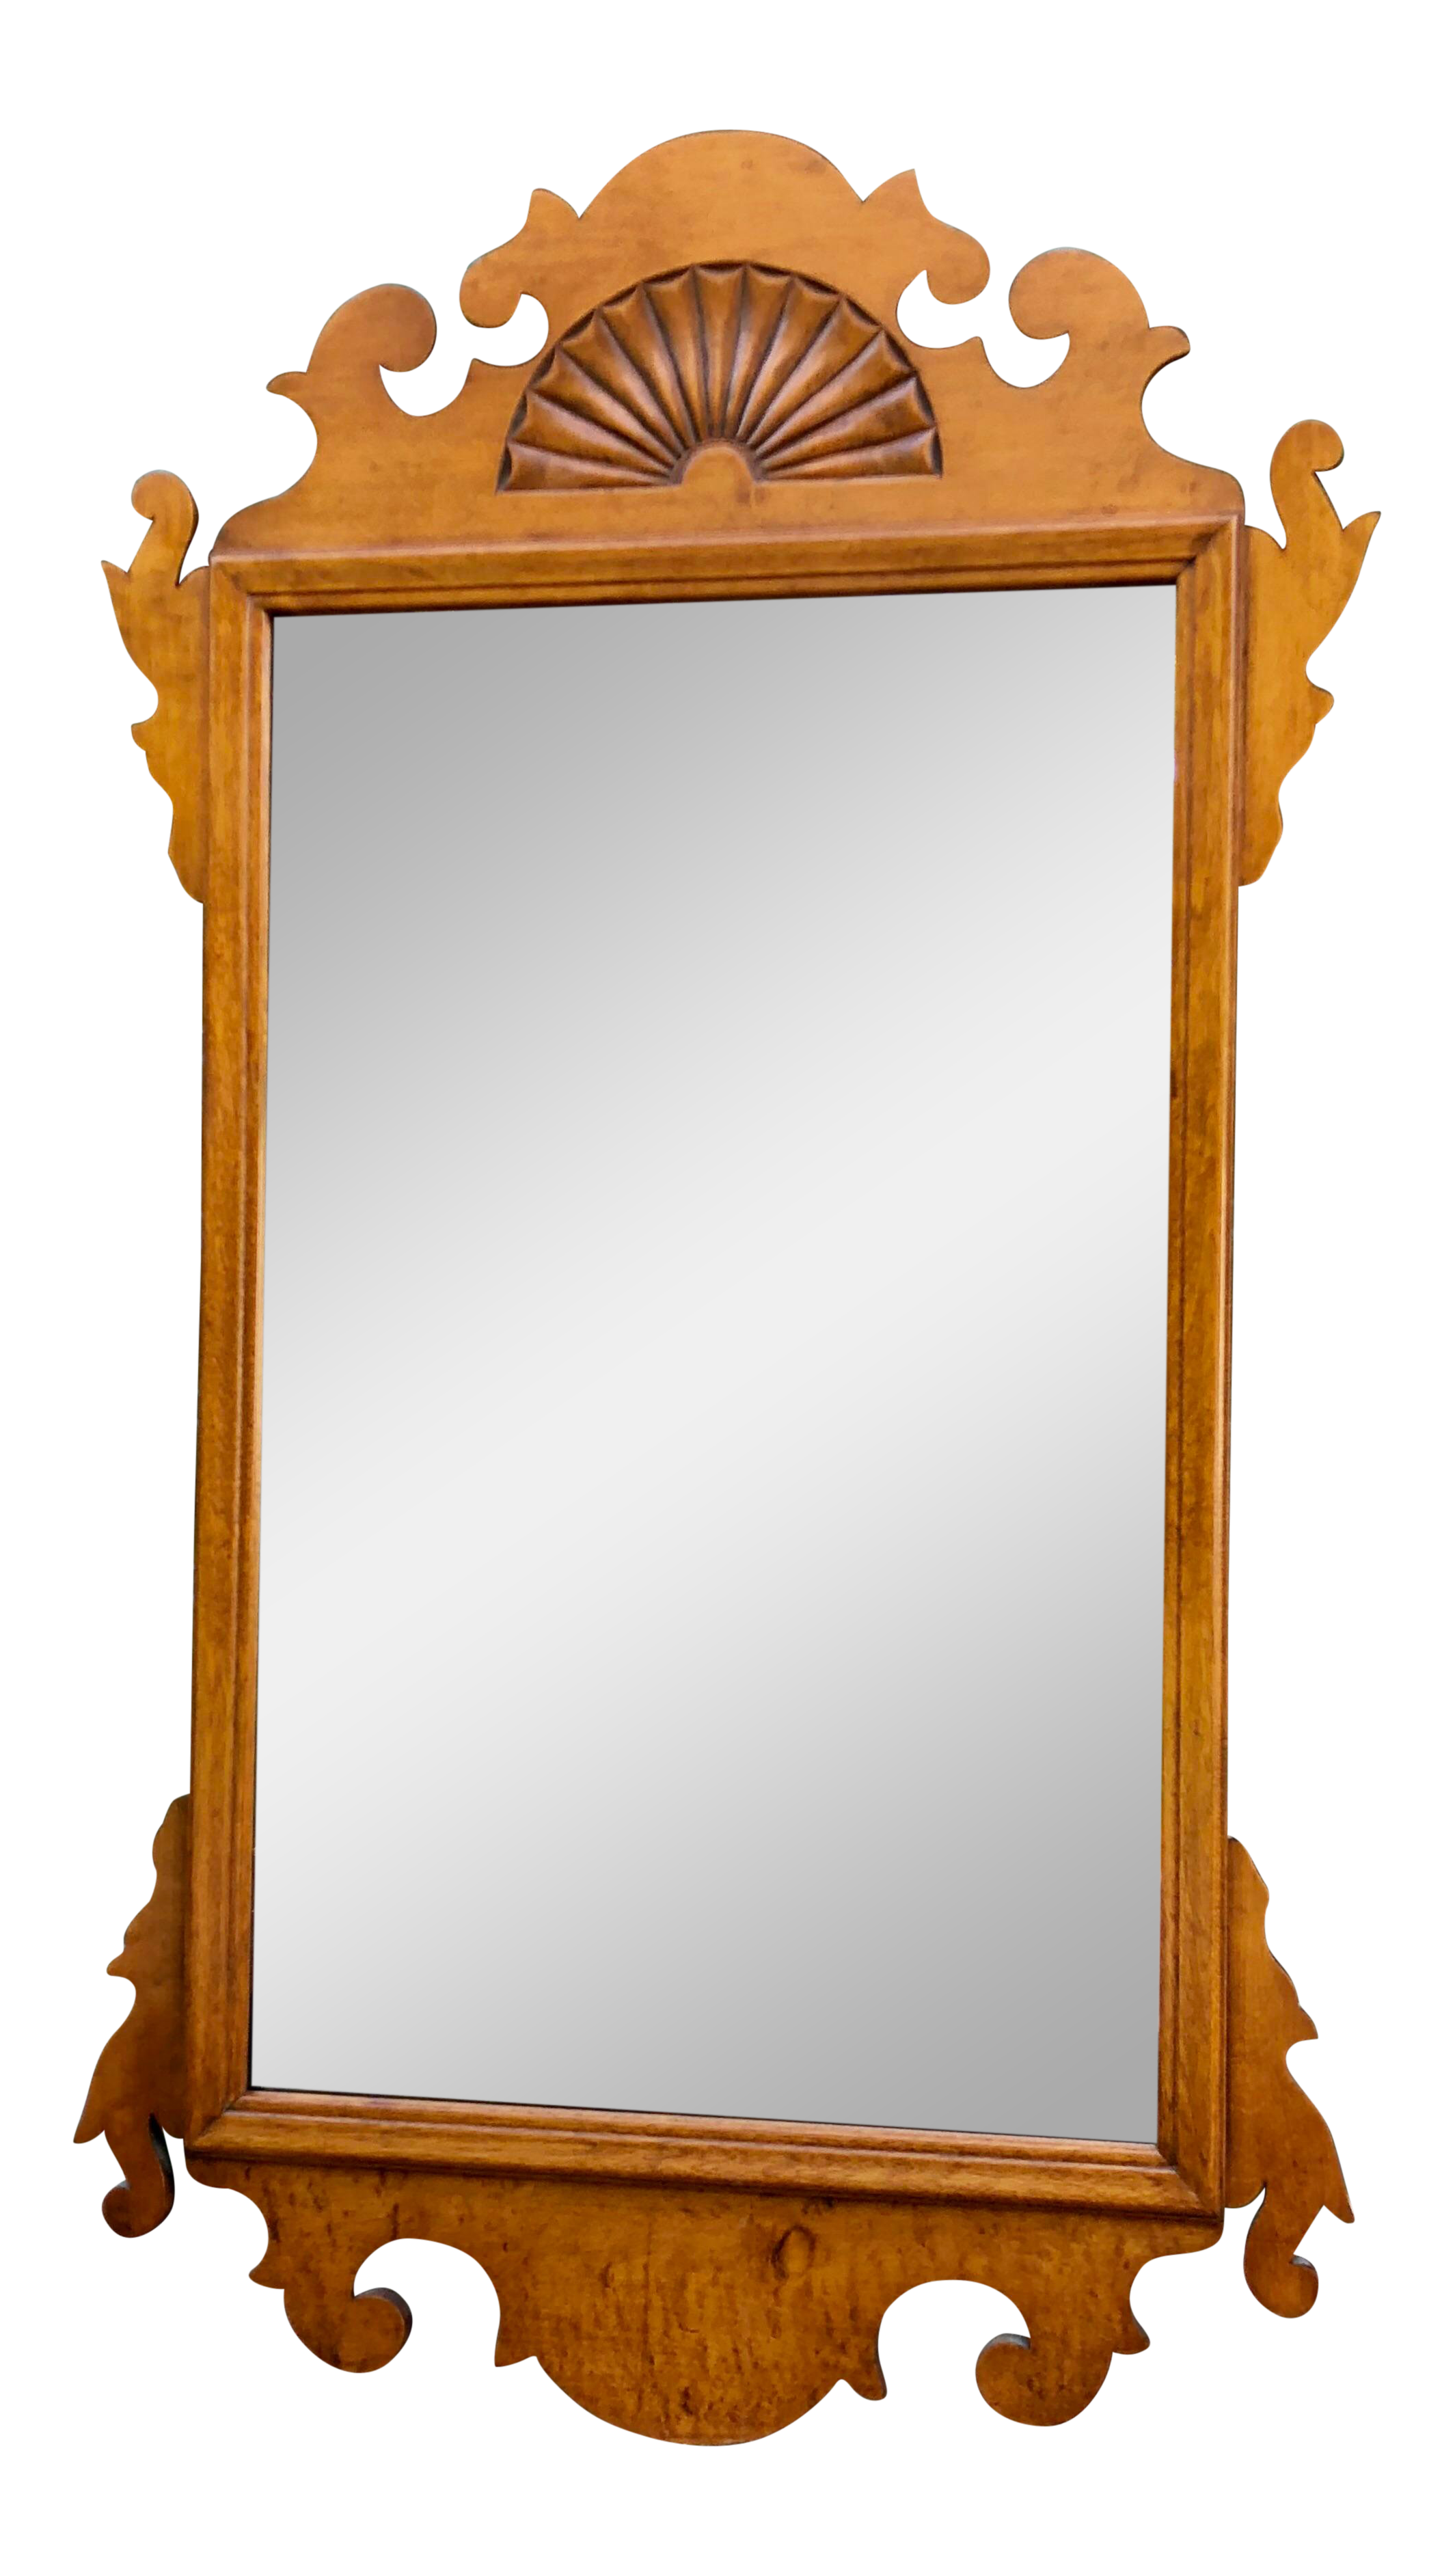 Makeup clipart rectangle mirror. Tiger maple chippendale wall